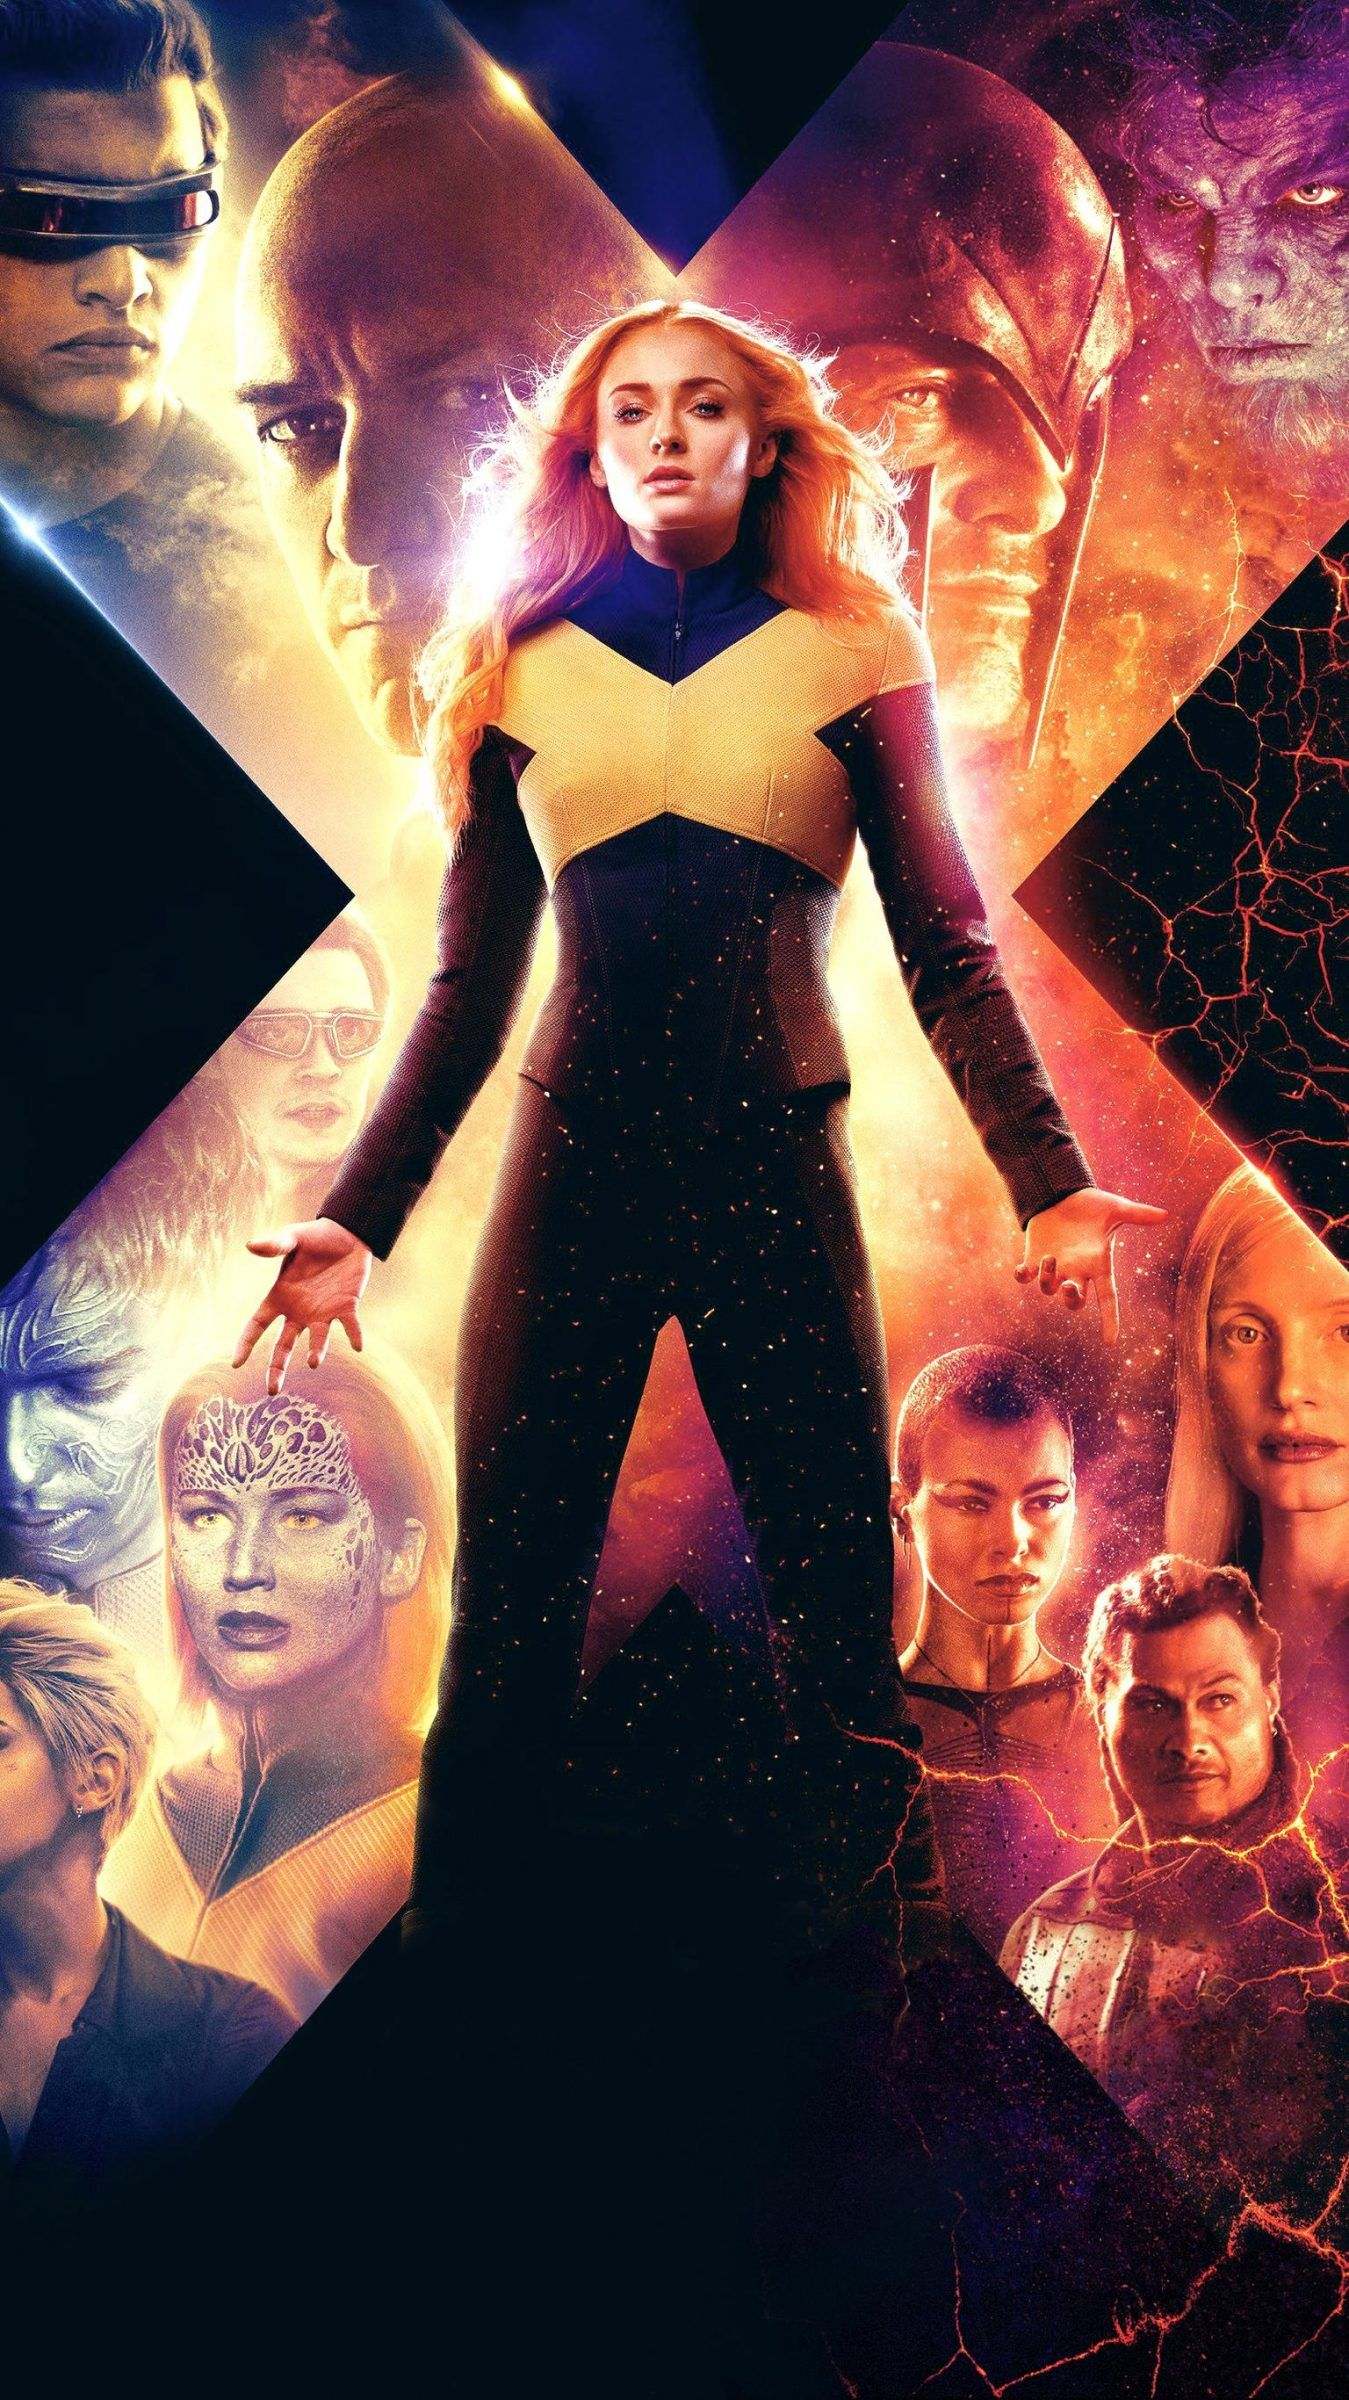 X Men Dark Phoenix Hd Wallpapers 7wallpapers Net Dark Phoenix Phoenix Wallpaper X Men